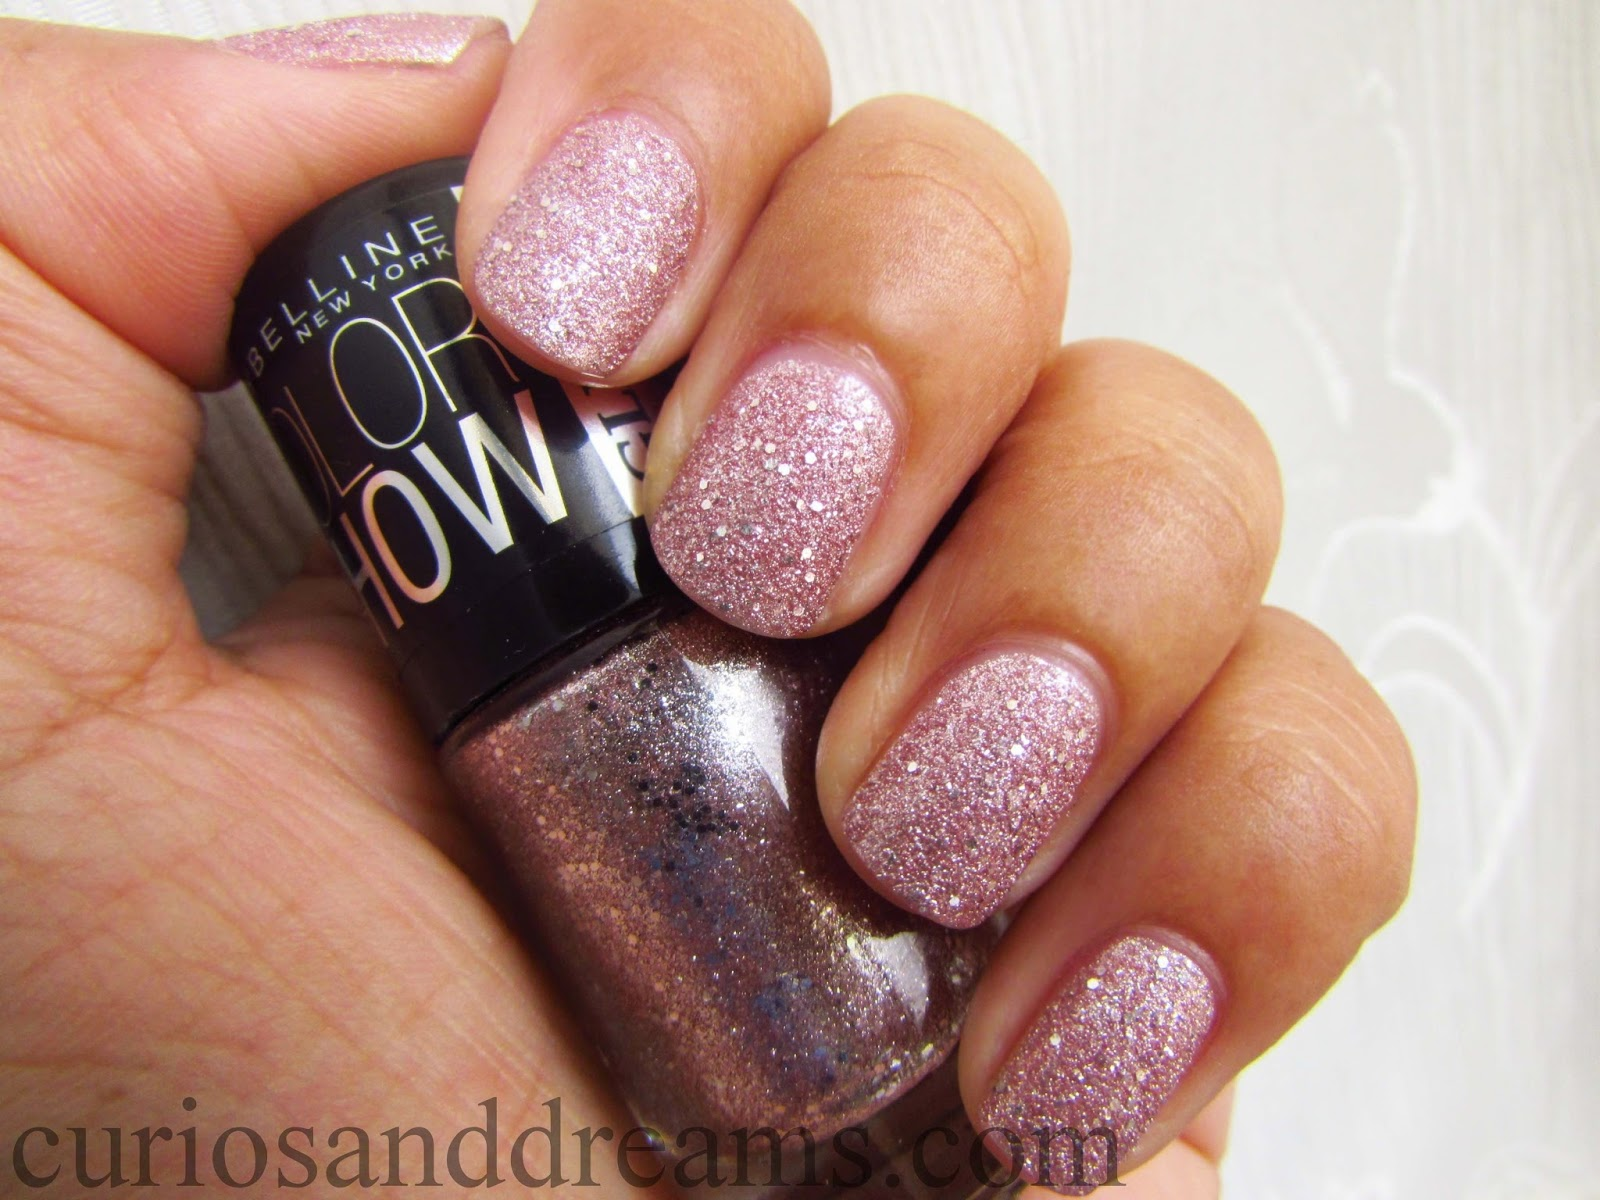 Maybelline Color Show Glitter Mania Pink Champagne review, Maybelline Glitter Mania Pink Champagne review, Maybelline Glitter Mania Pink Champagne swatch